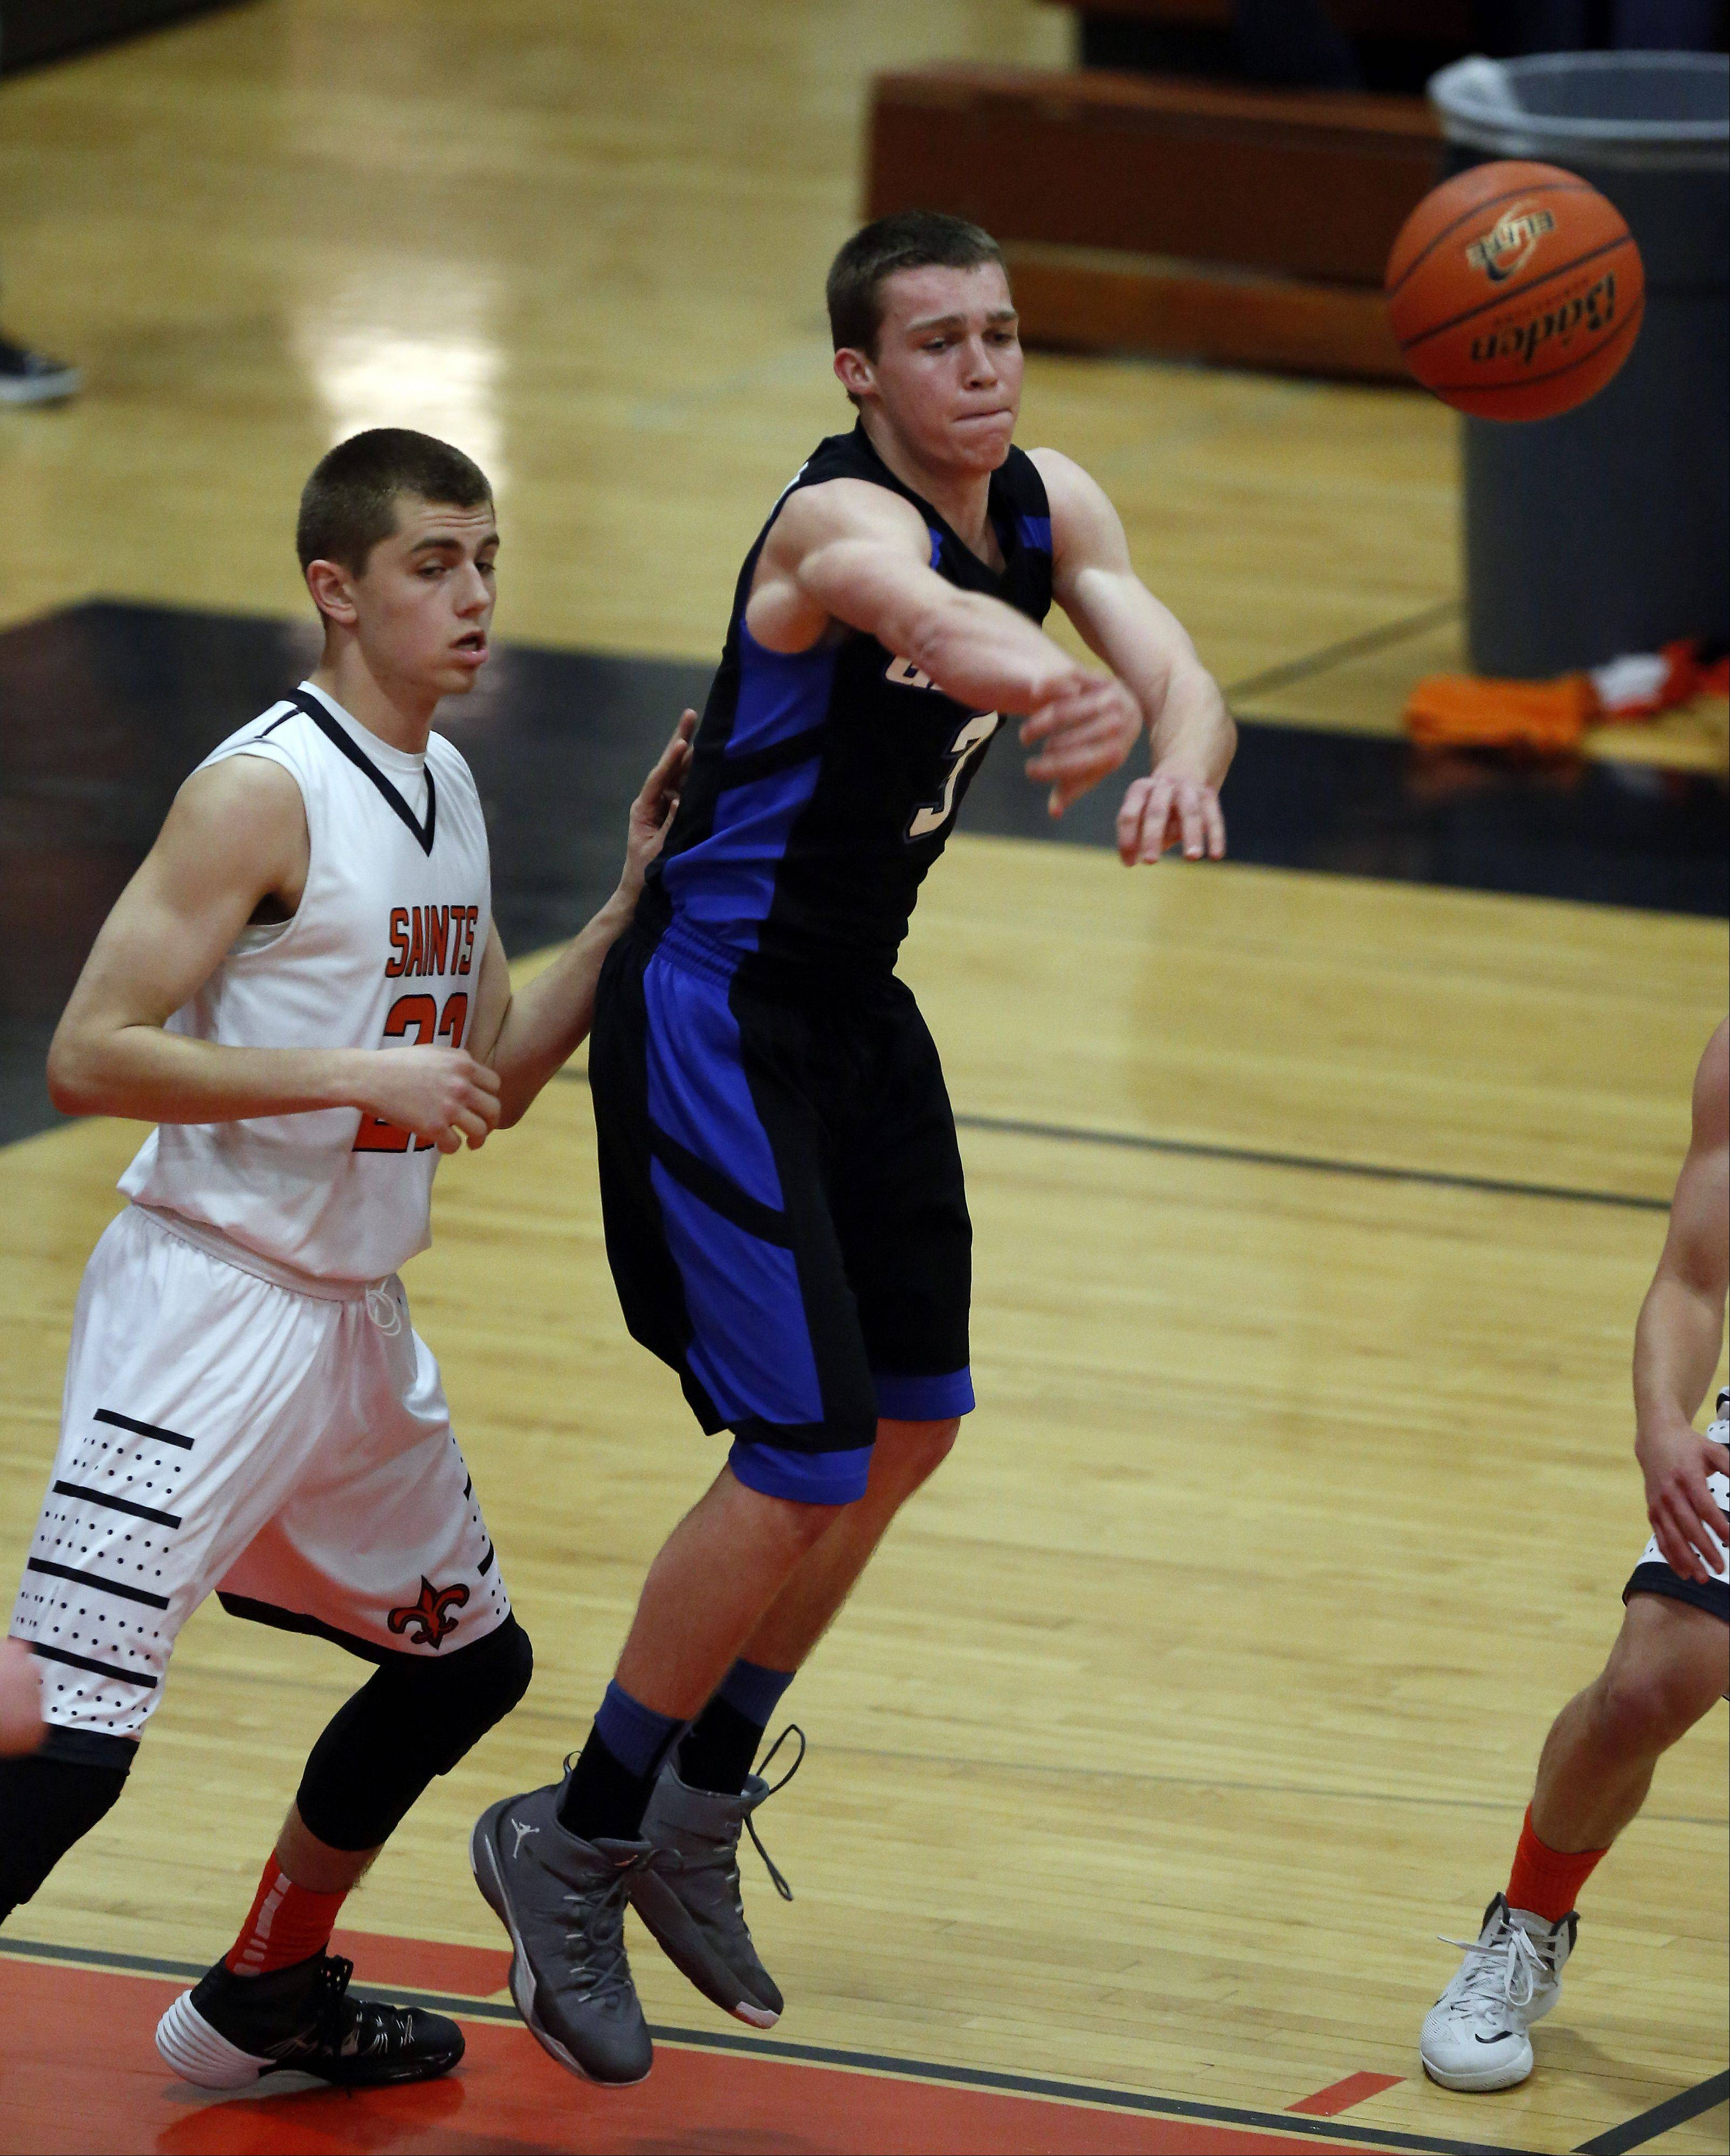 Images from the Geneva vs. St. Charles East boys basketball game Saturday, February 1, 2014 in St. Charles.